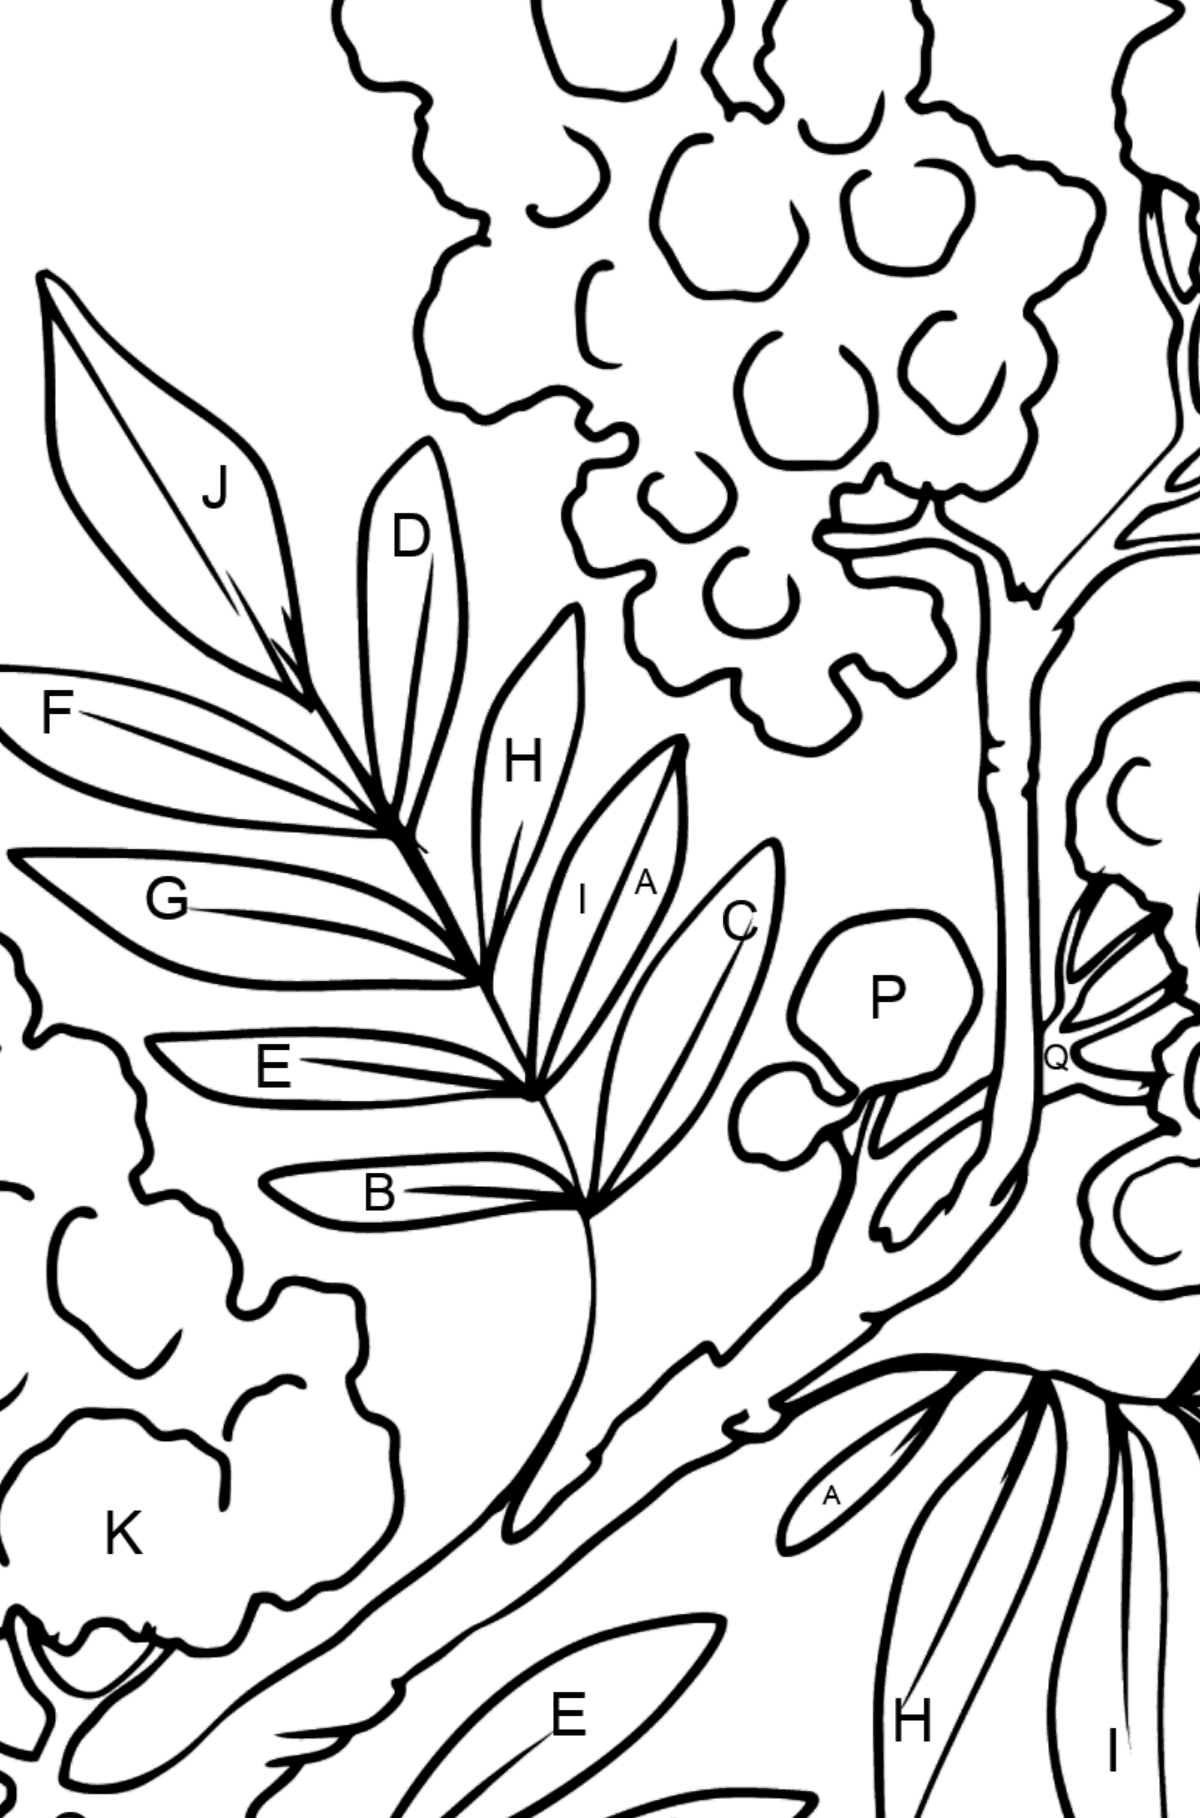 Flower Coloring Page - Mimosa - Coloring by Letters for Kids